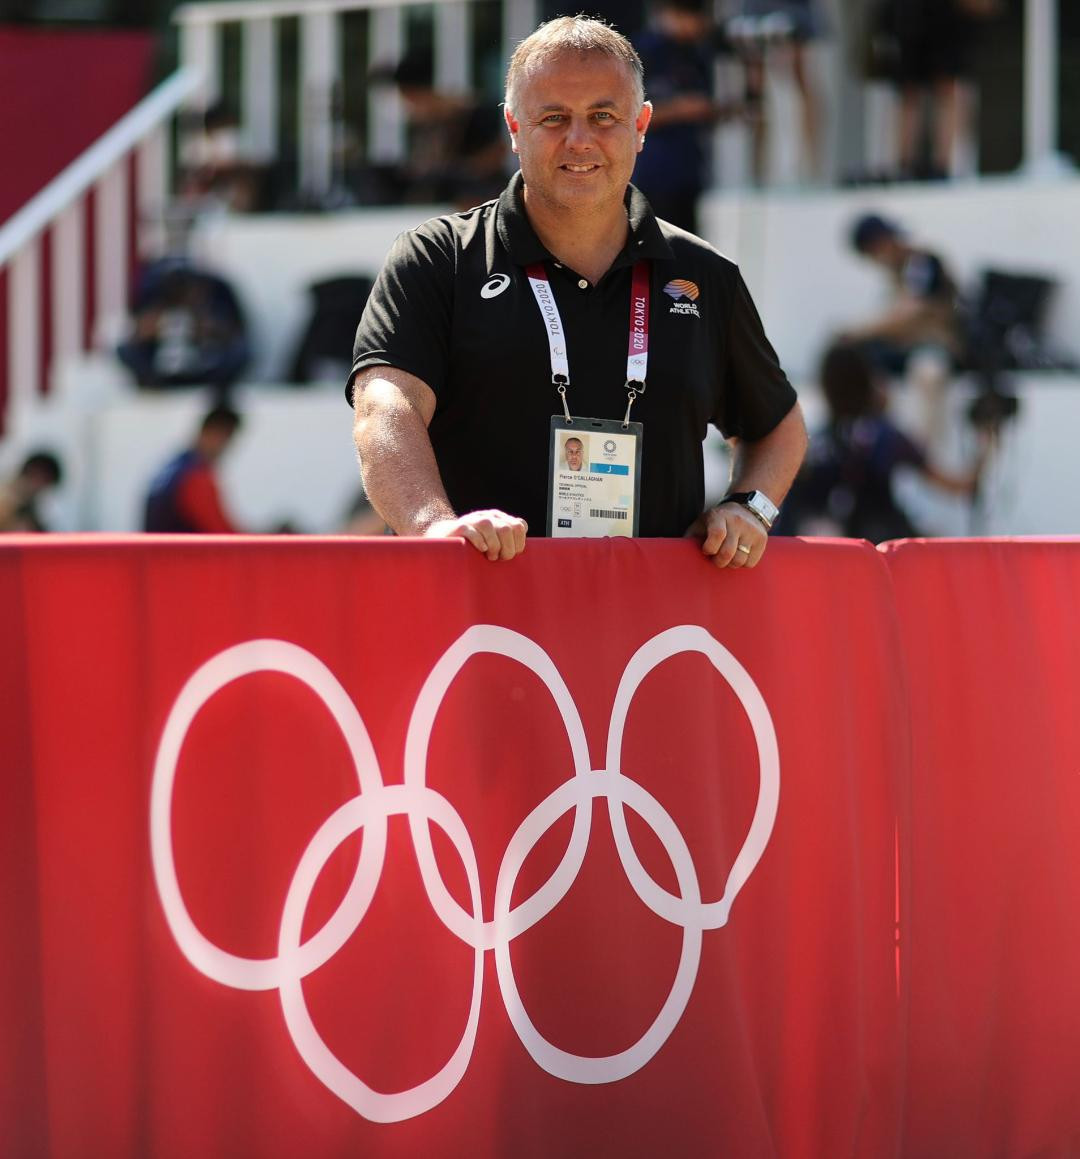 Irishman Piece O'Callaghan has been appointed as World Athletics as the head of competition management as the international governing body completed its restructuring of its calendar ©World Athletics